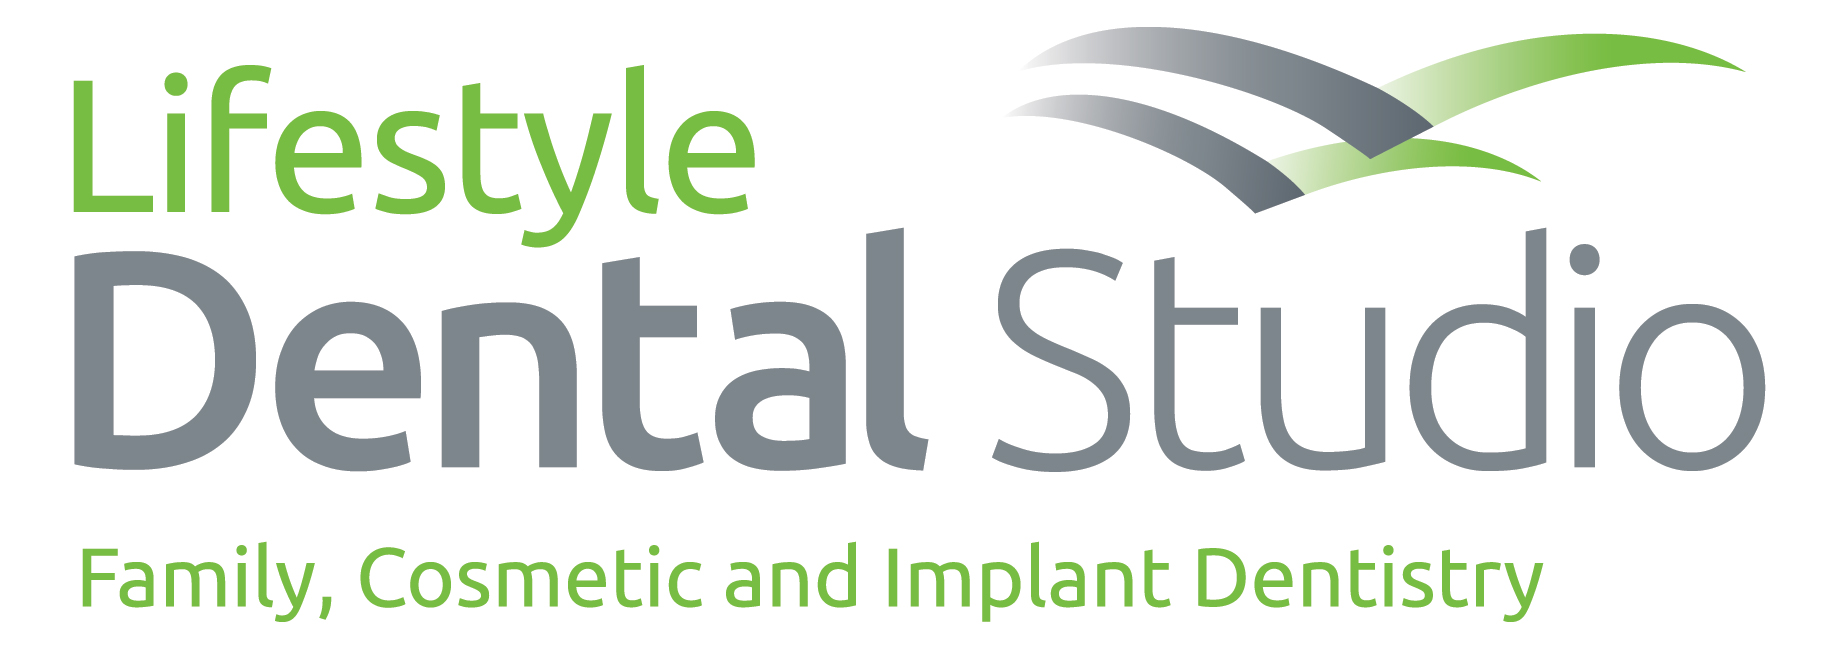 Lifestyle Dental Studio